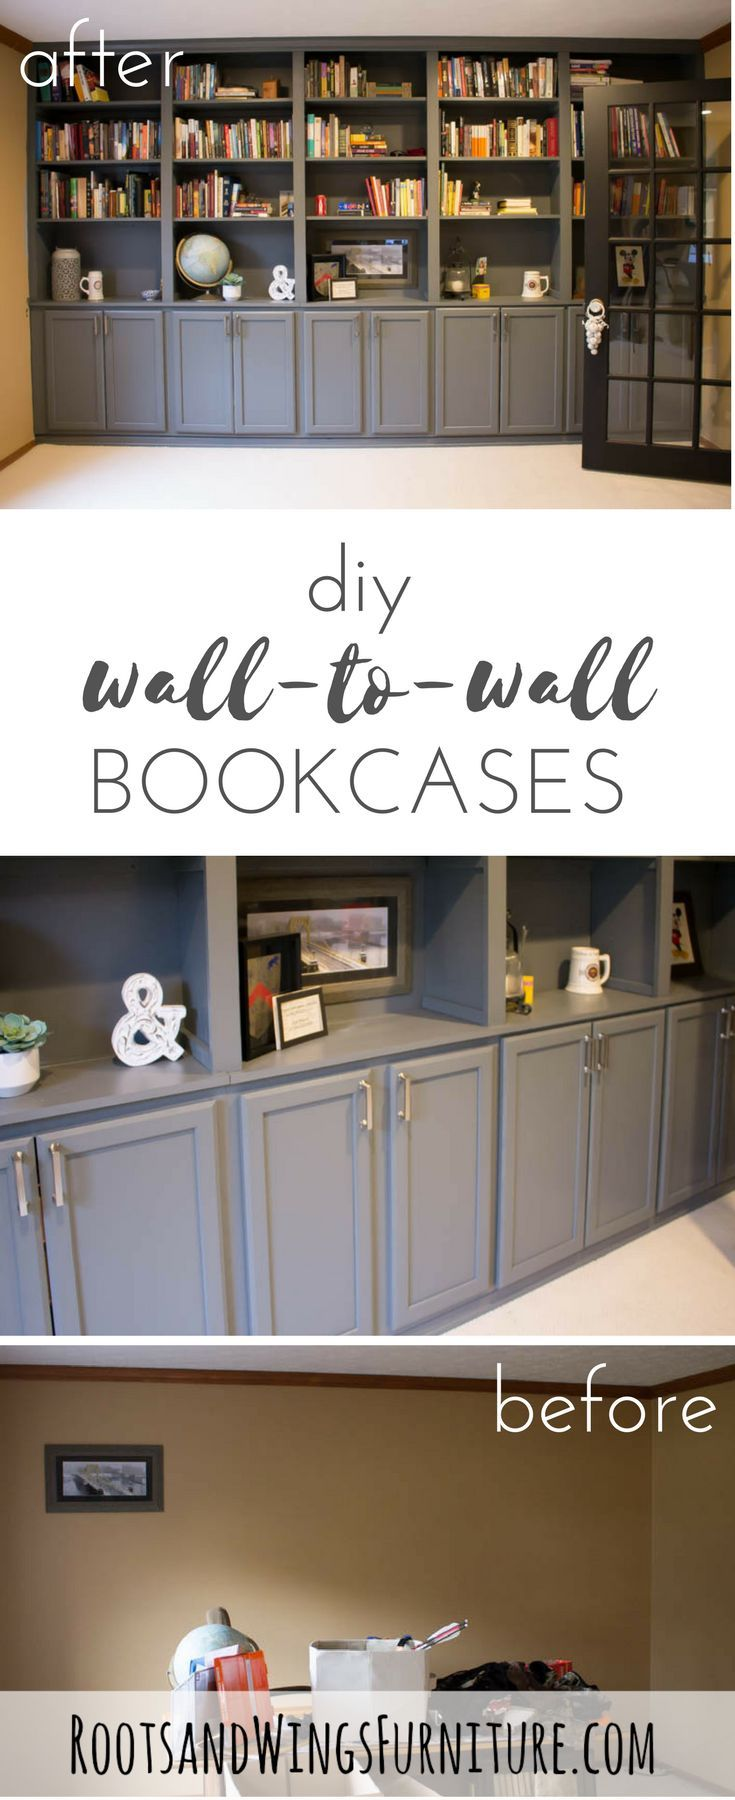 How To Build Built In Shelves The Reveal Roots Wings Furniture Llc Bookshelves Diy Home Office Storage Used Kitchen Cabinets